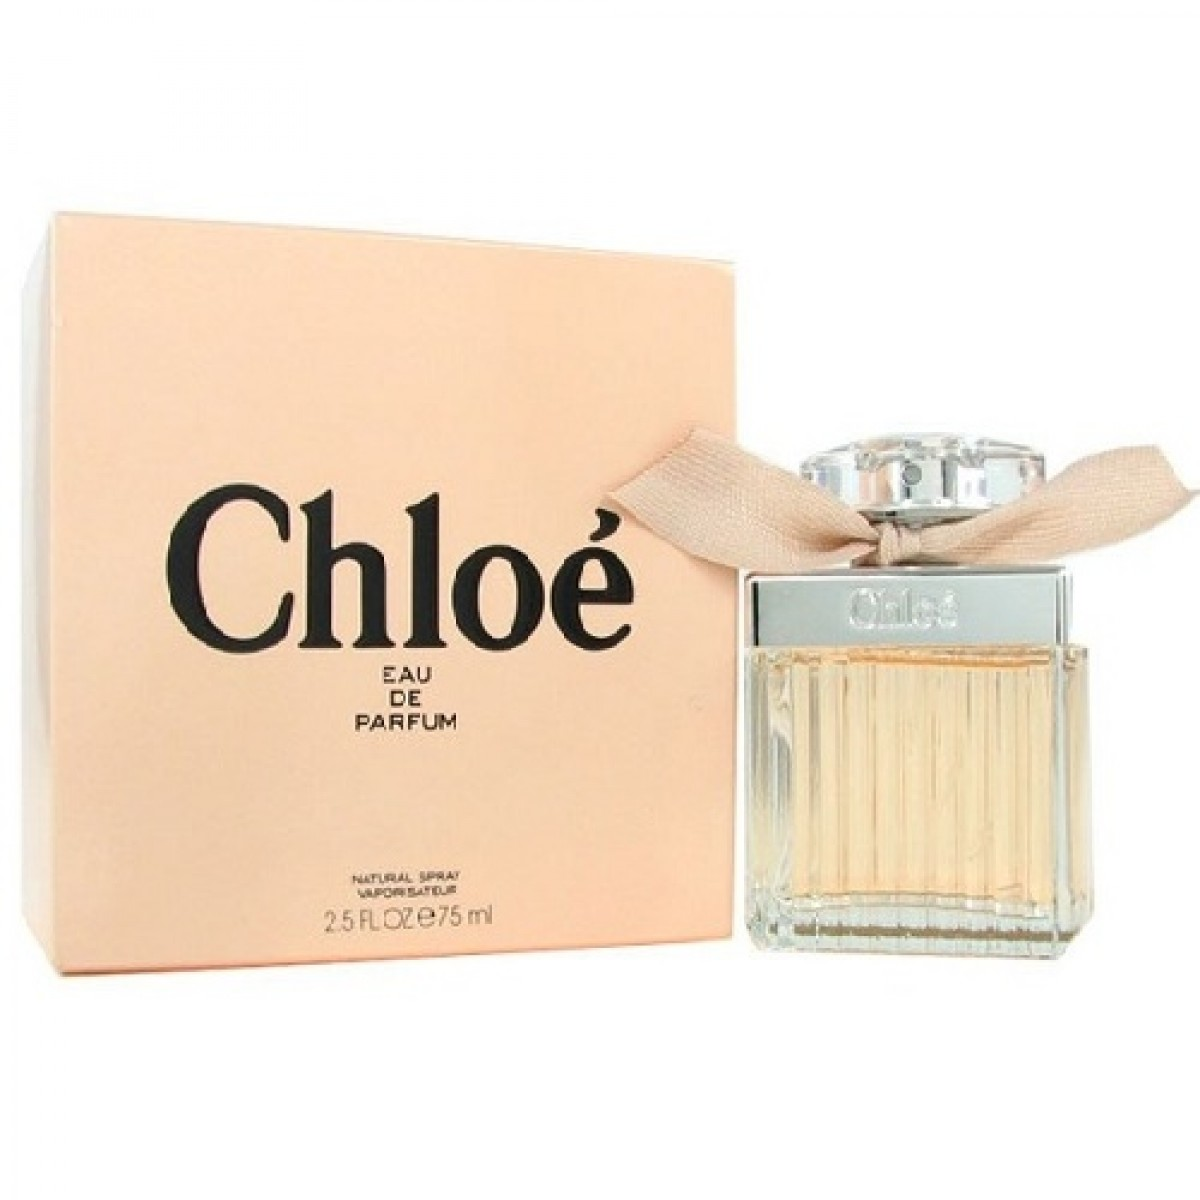 Chloe Eau Chloe Eau De Parfum 75ml Perfume For Women